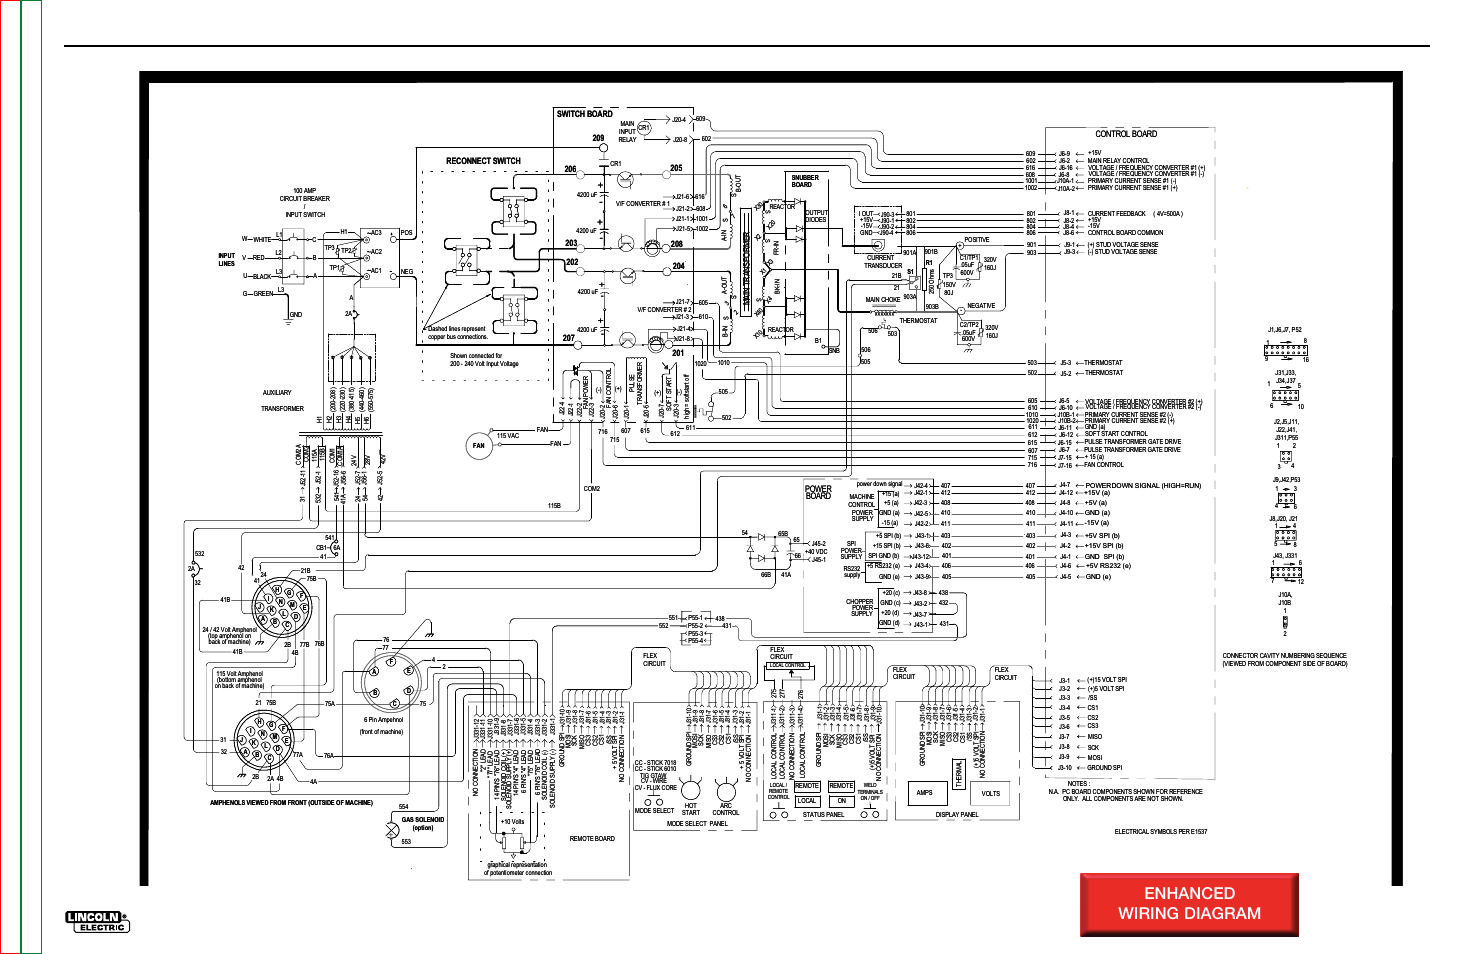 Electrical diagrams, Enhanced wiring diagram, Schematic - complete machine  | Lincoln Electric INVERTEC V350-PRO SVM152-A User Manual | Page 135 / 155